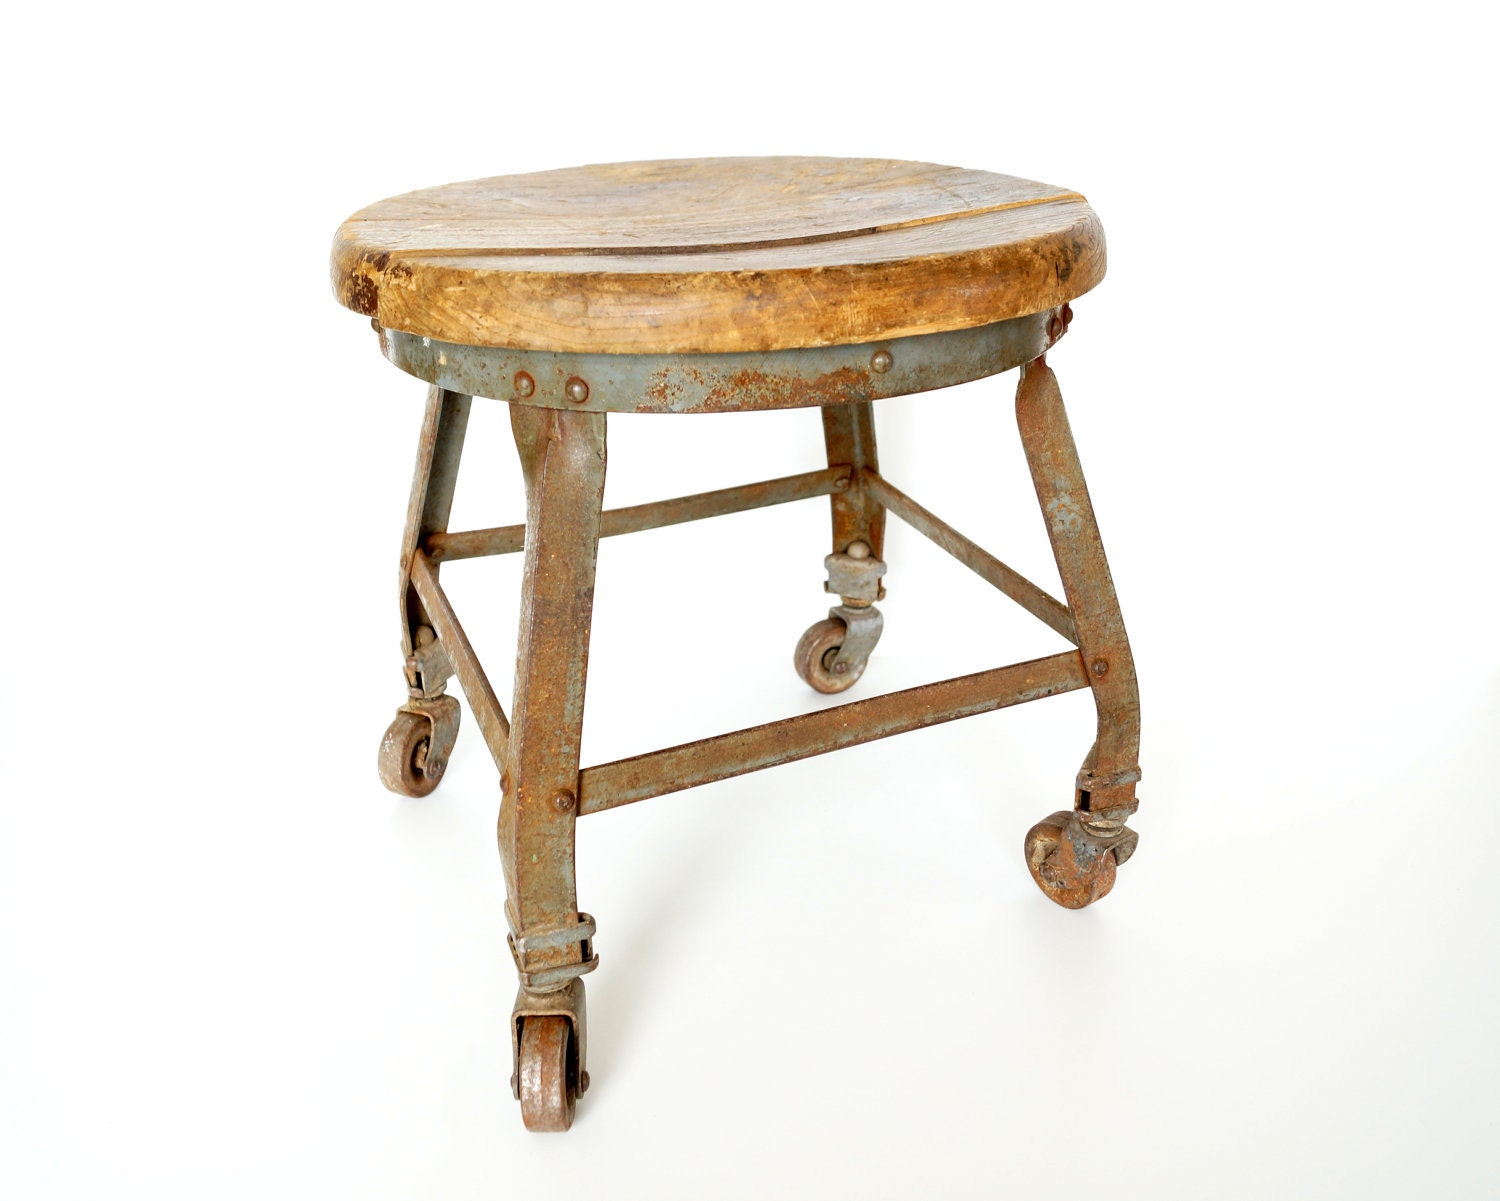 Antique Vintage Wood and Metal Stool on Casters by  : ilfullxfull333036244 from www.etsy.com size 1500 x 1201 jpeg 158kB